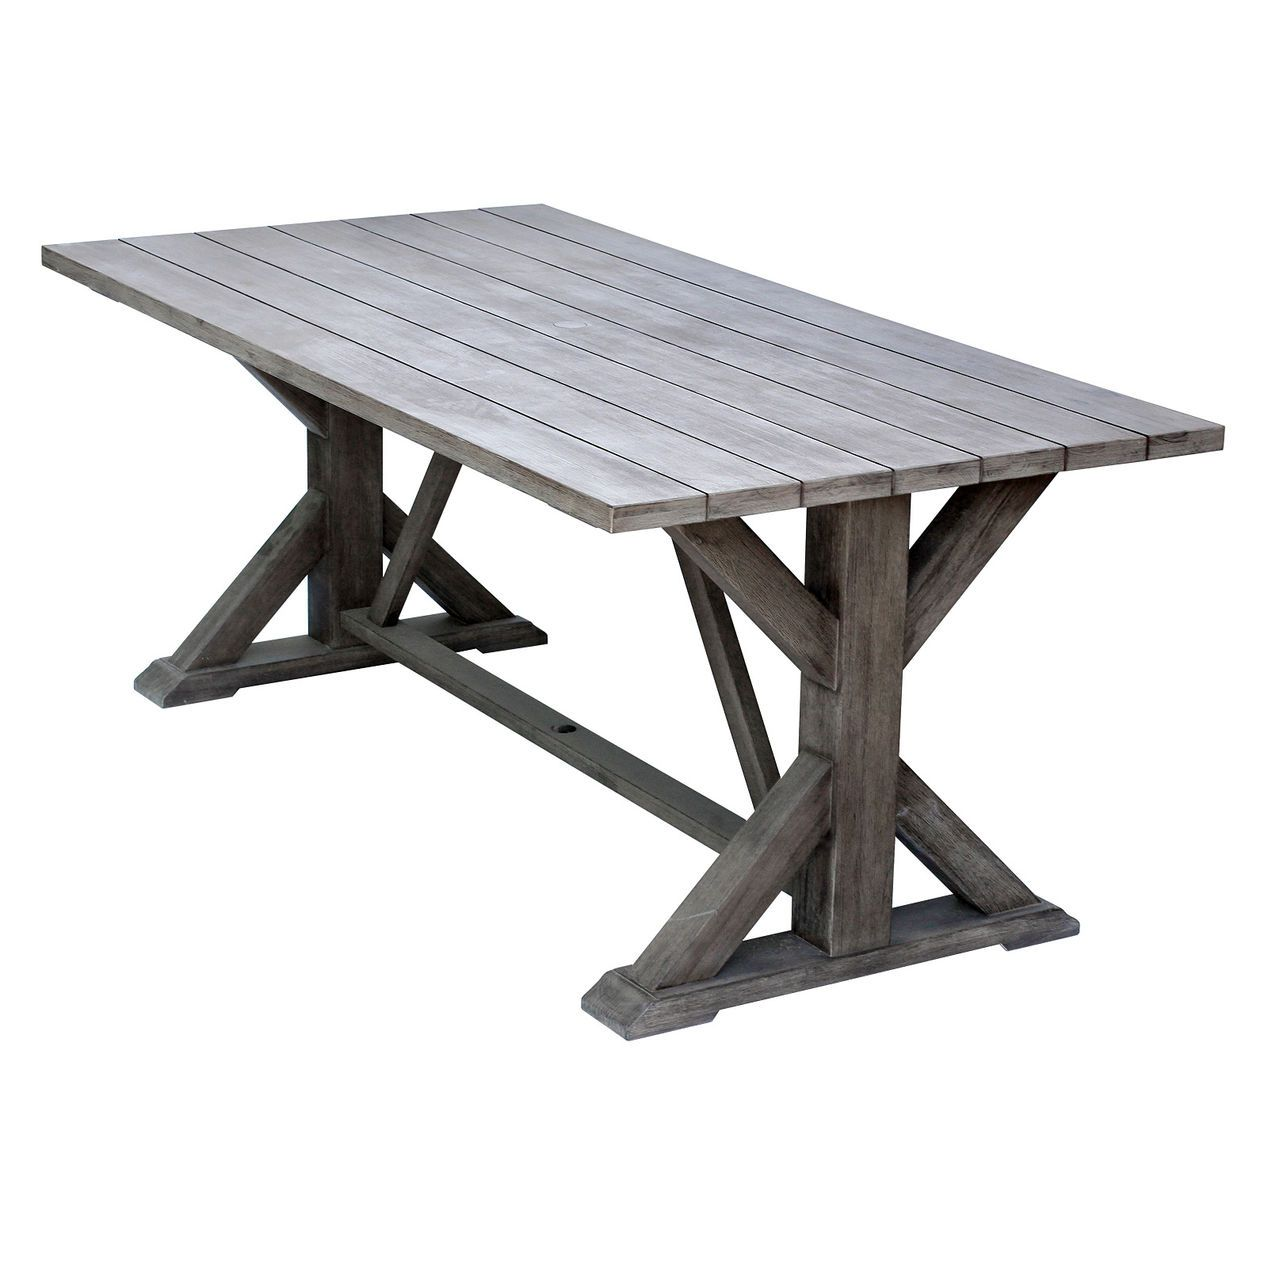 Black wood patio furniture - Find This Pin And More On Outdoor Patio Space Camden Wood Trestle Table